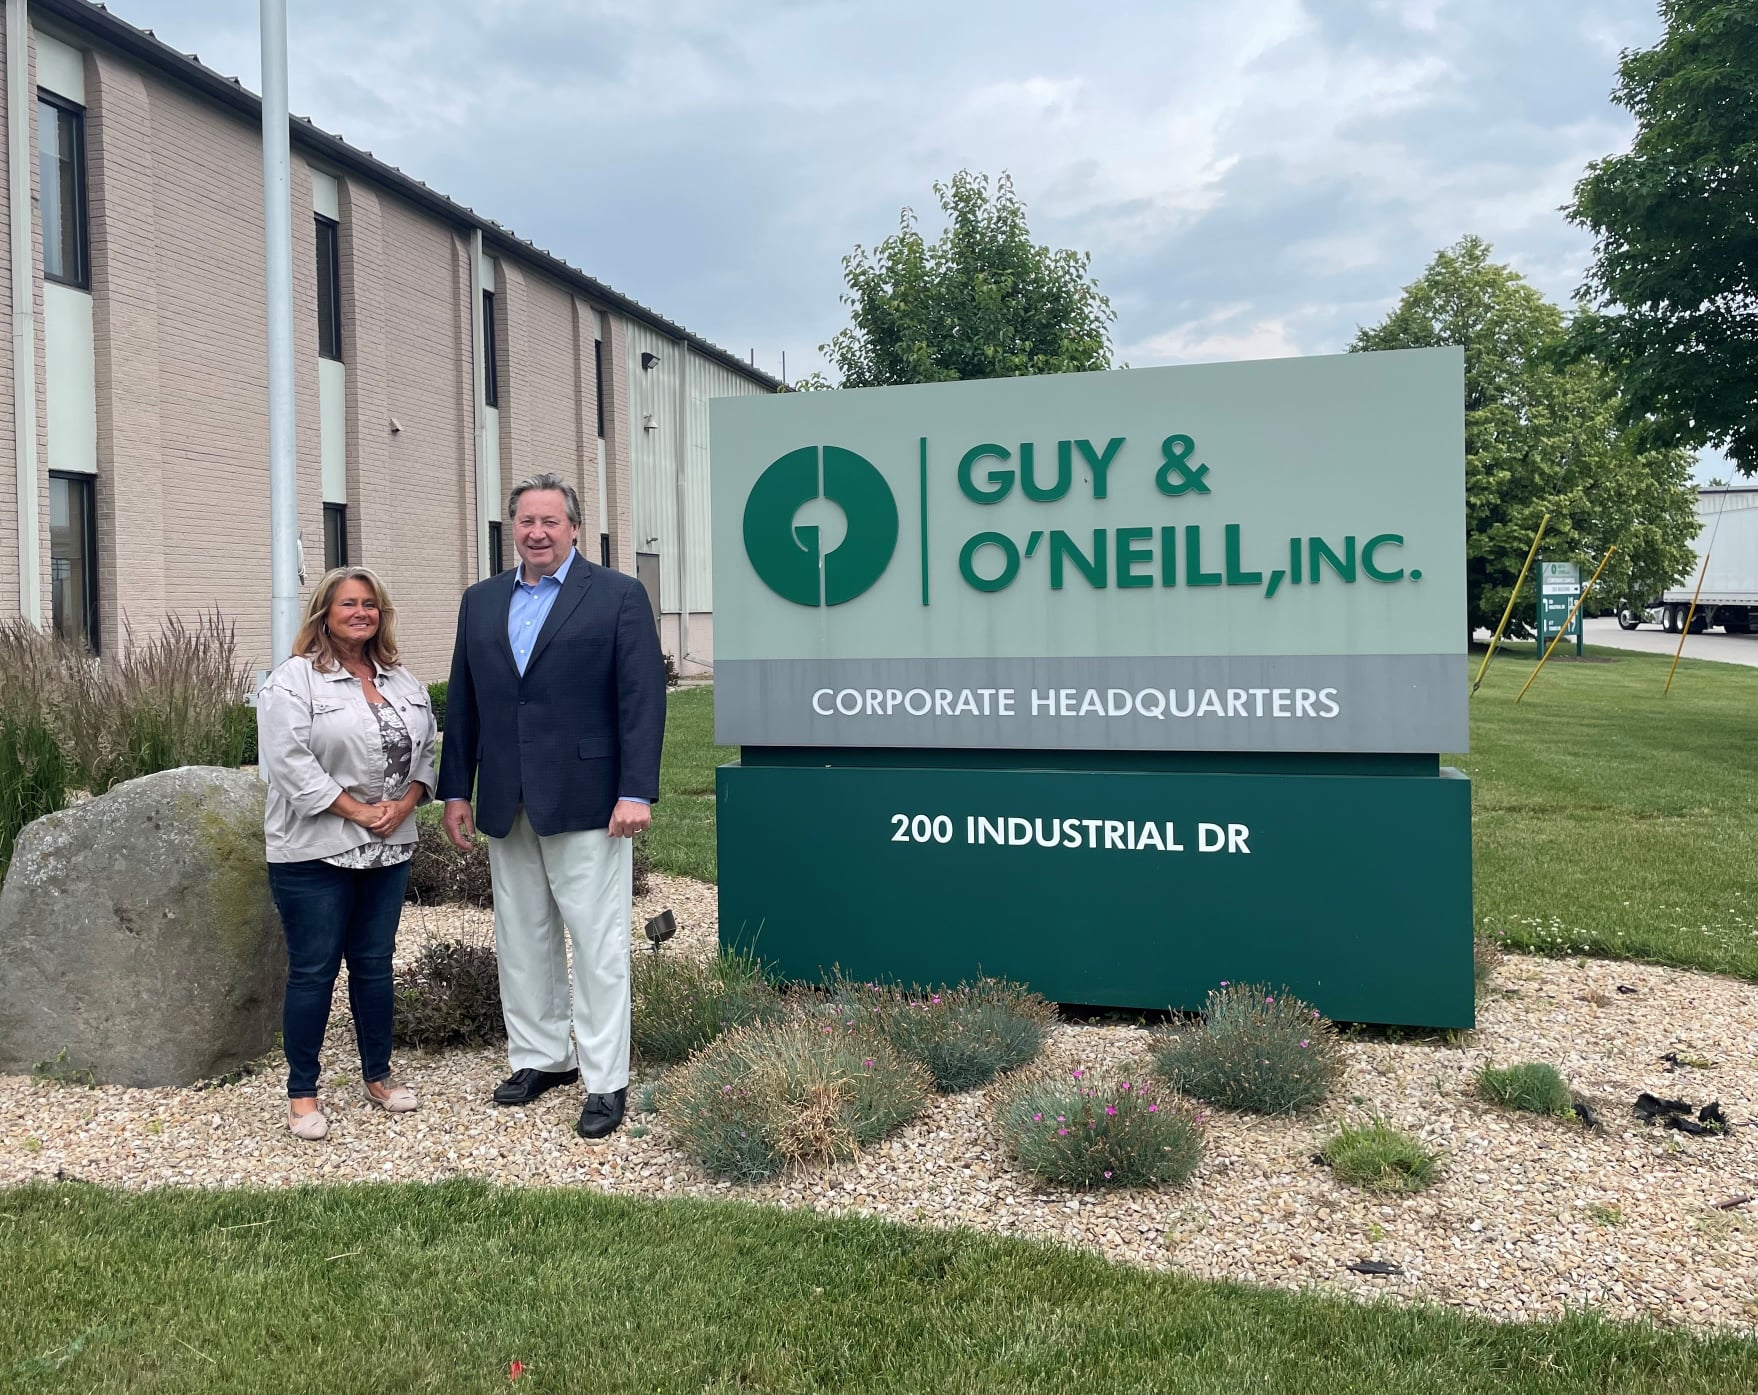 Guy & O'Neill Human Resources Manager Jennifer Engert with Doig Corporation President Jim Winistor who nominated G&O